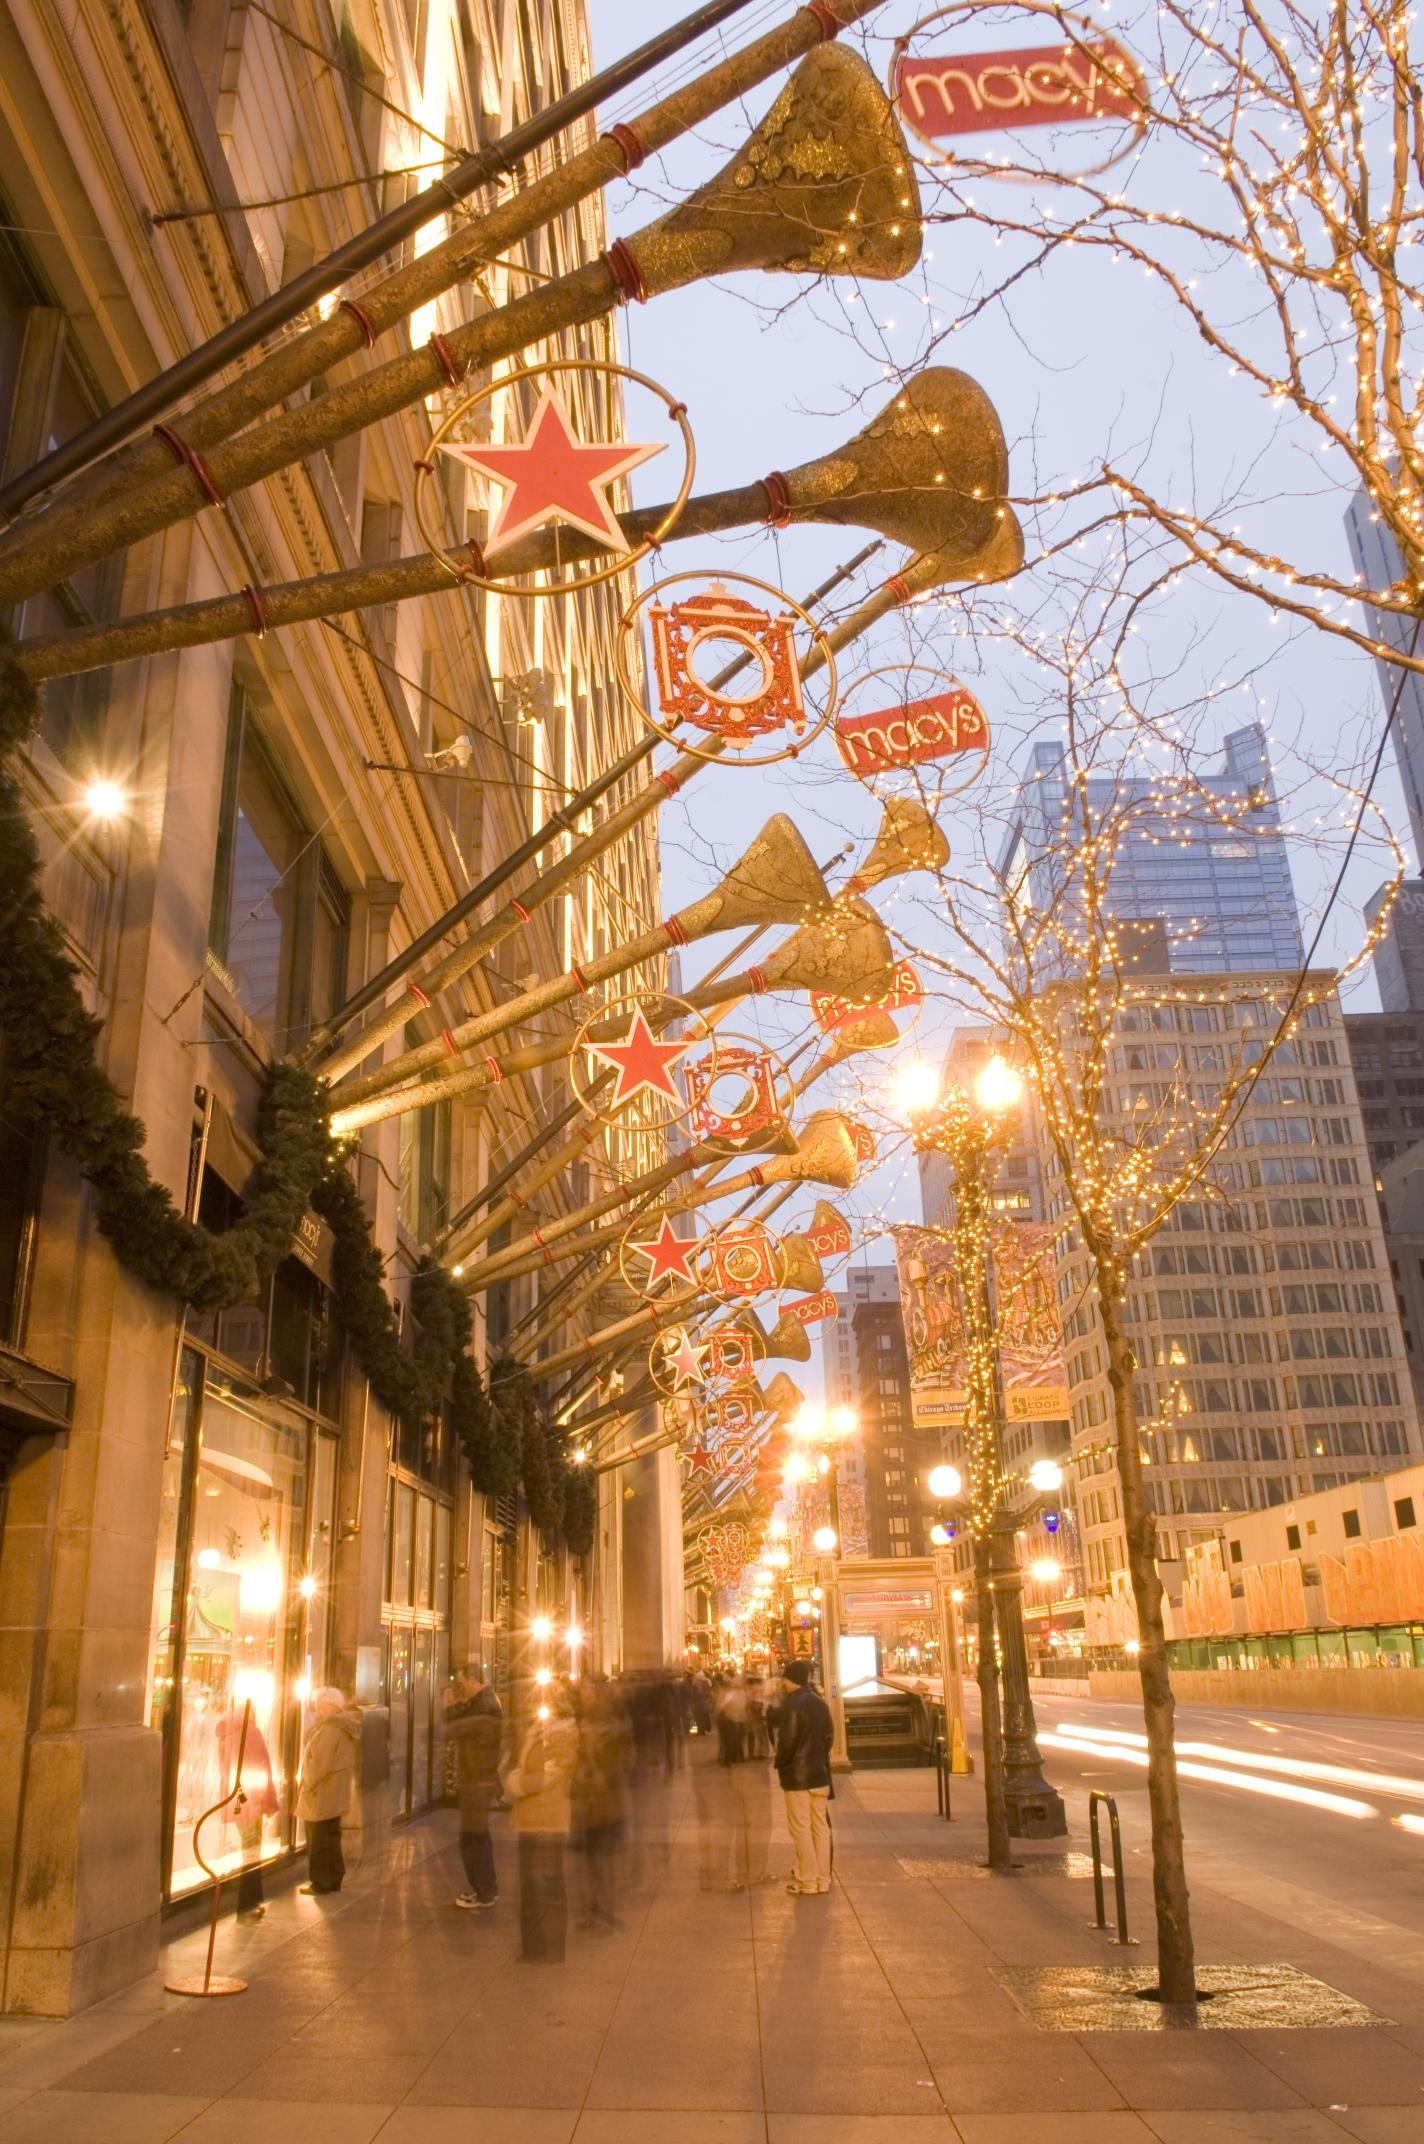 Chicago Christmas.A Family Christmas On Chicago S State Street Chicago Like